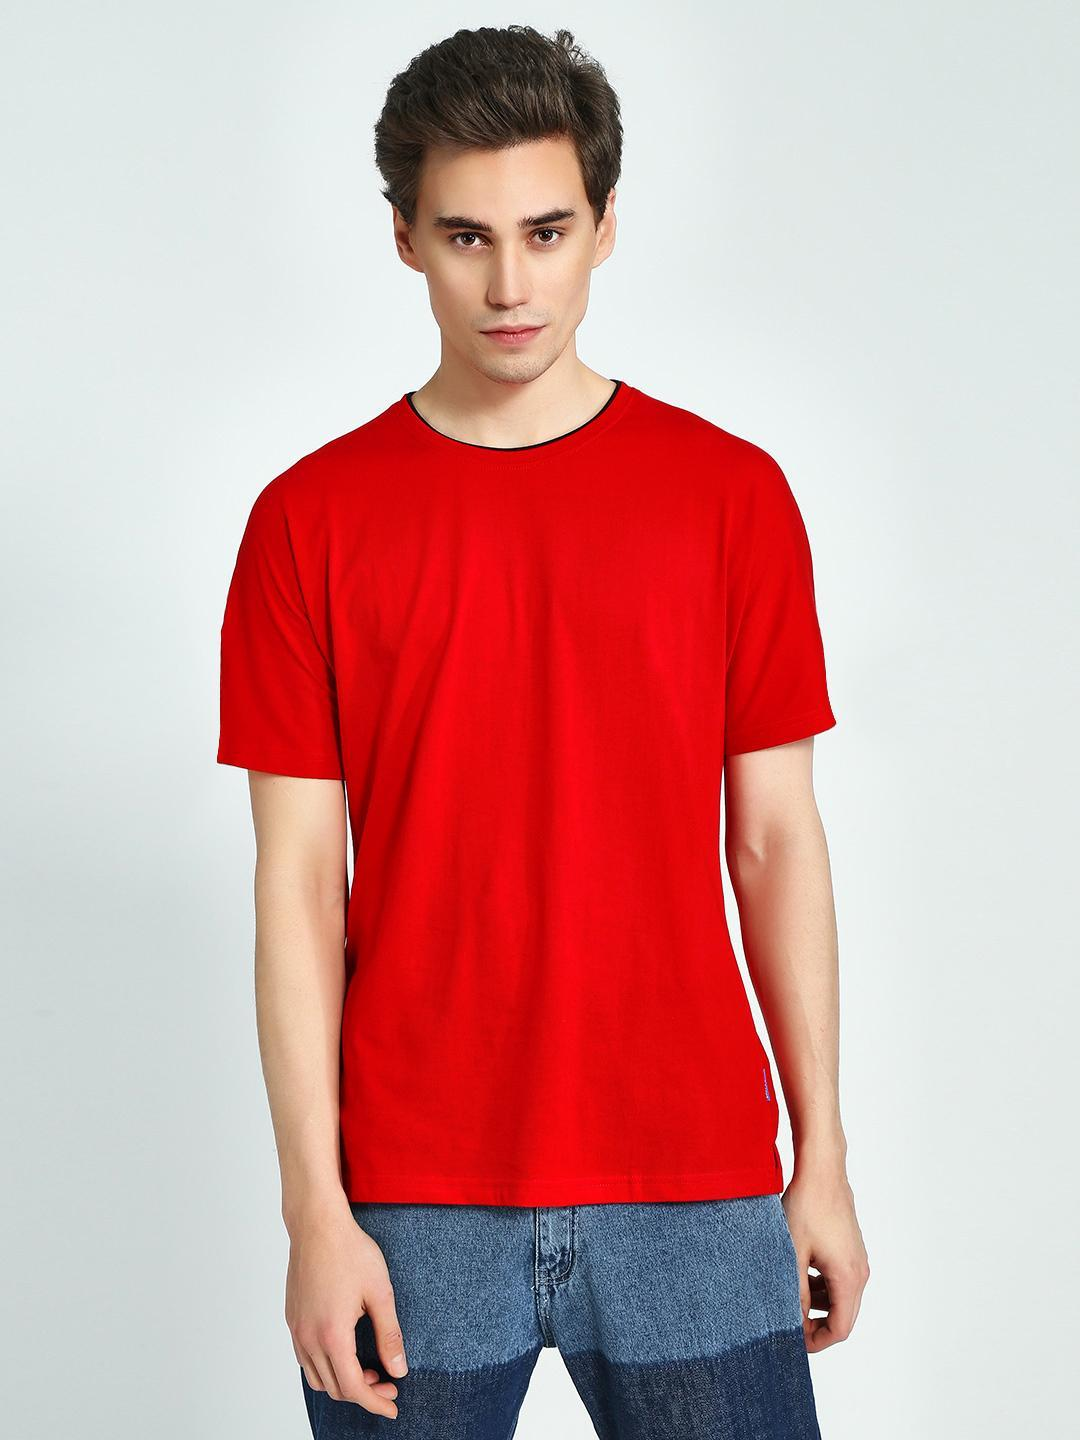 Blue Saint Red Contrast Ribbed Crew Neck T-Shirt 1